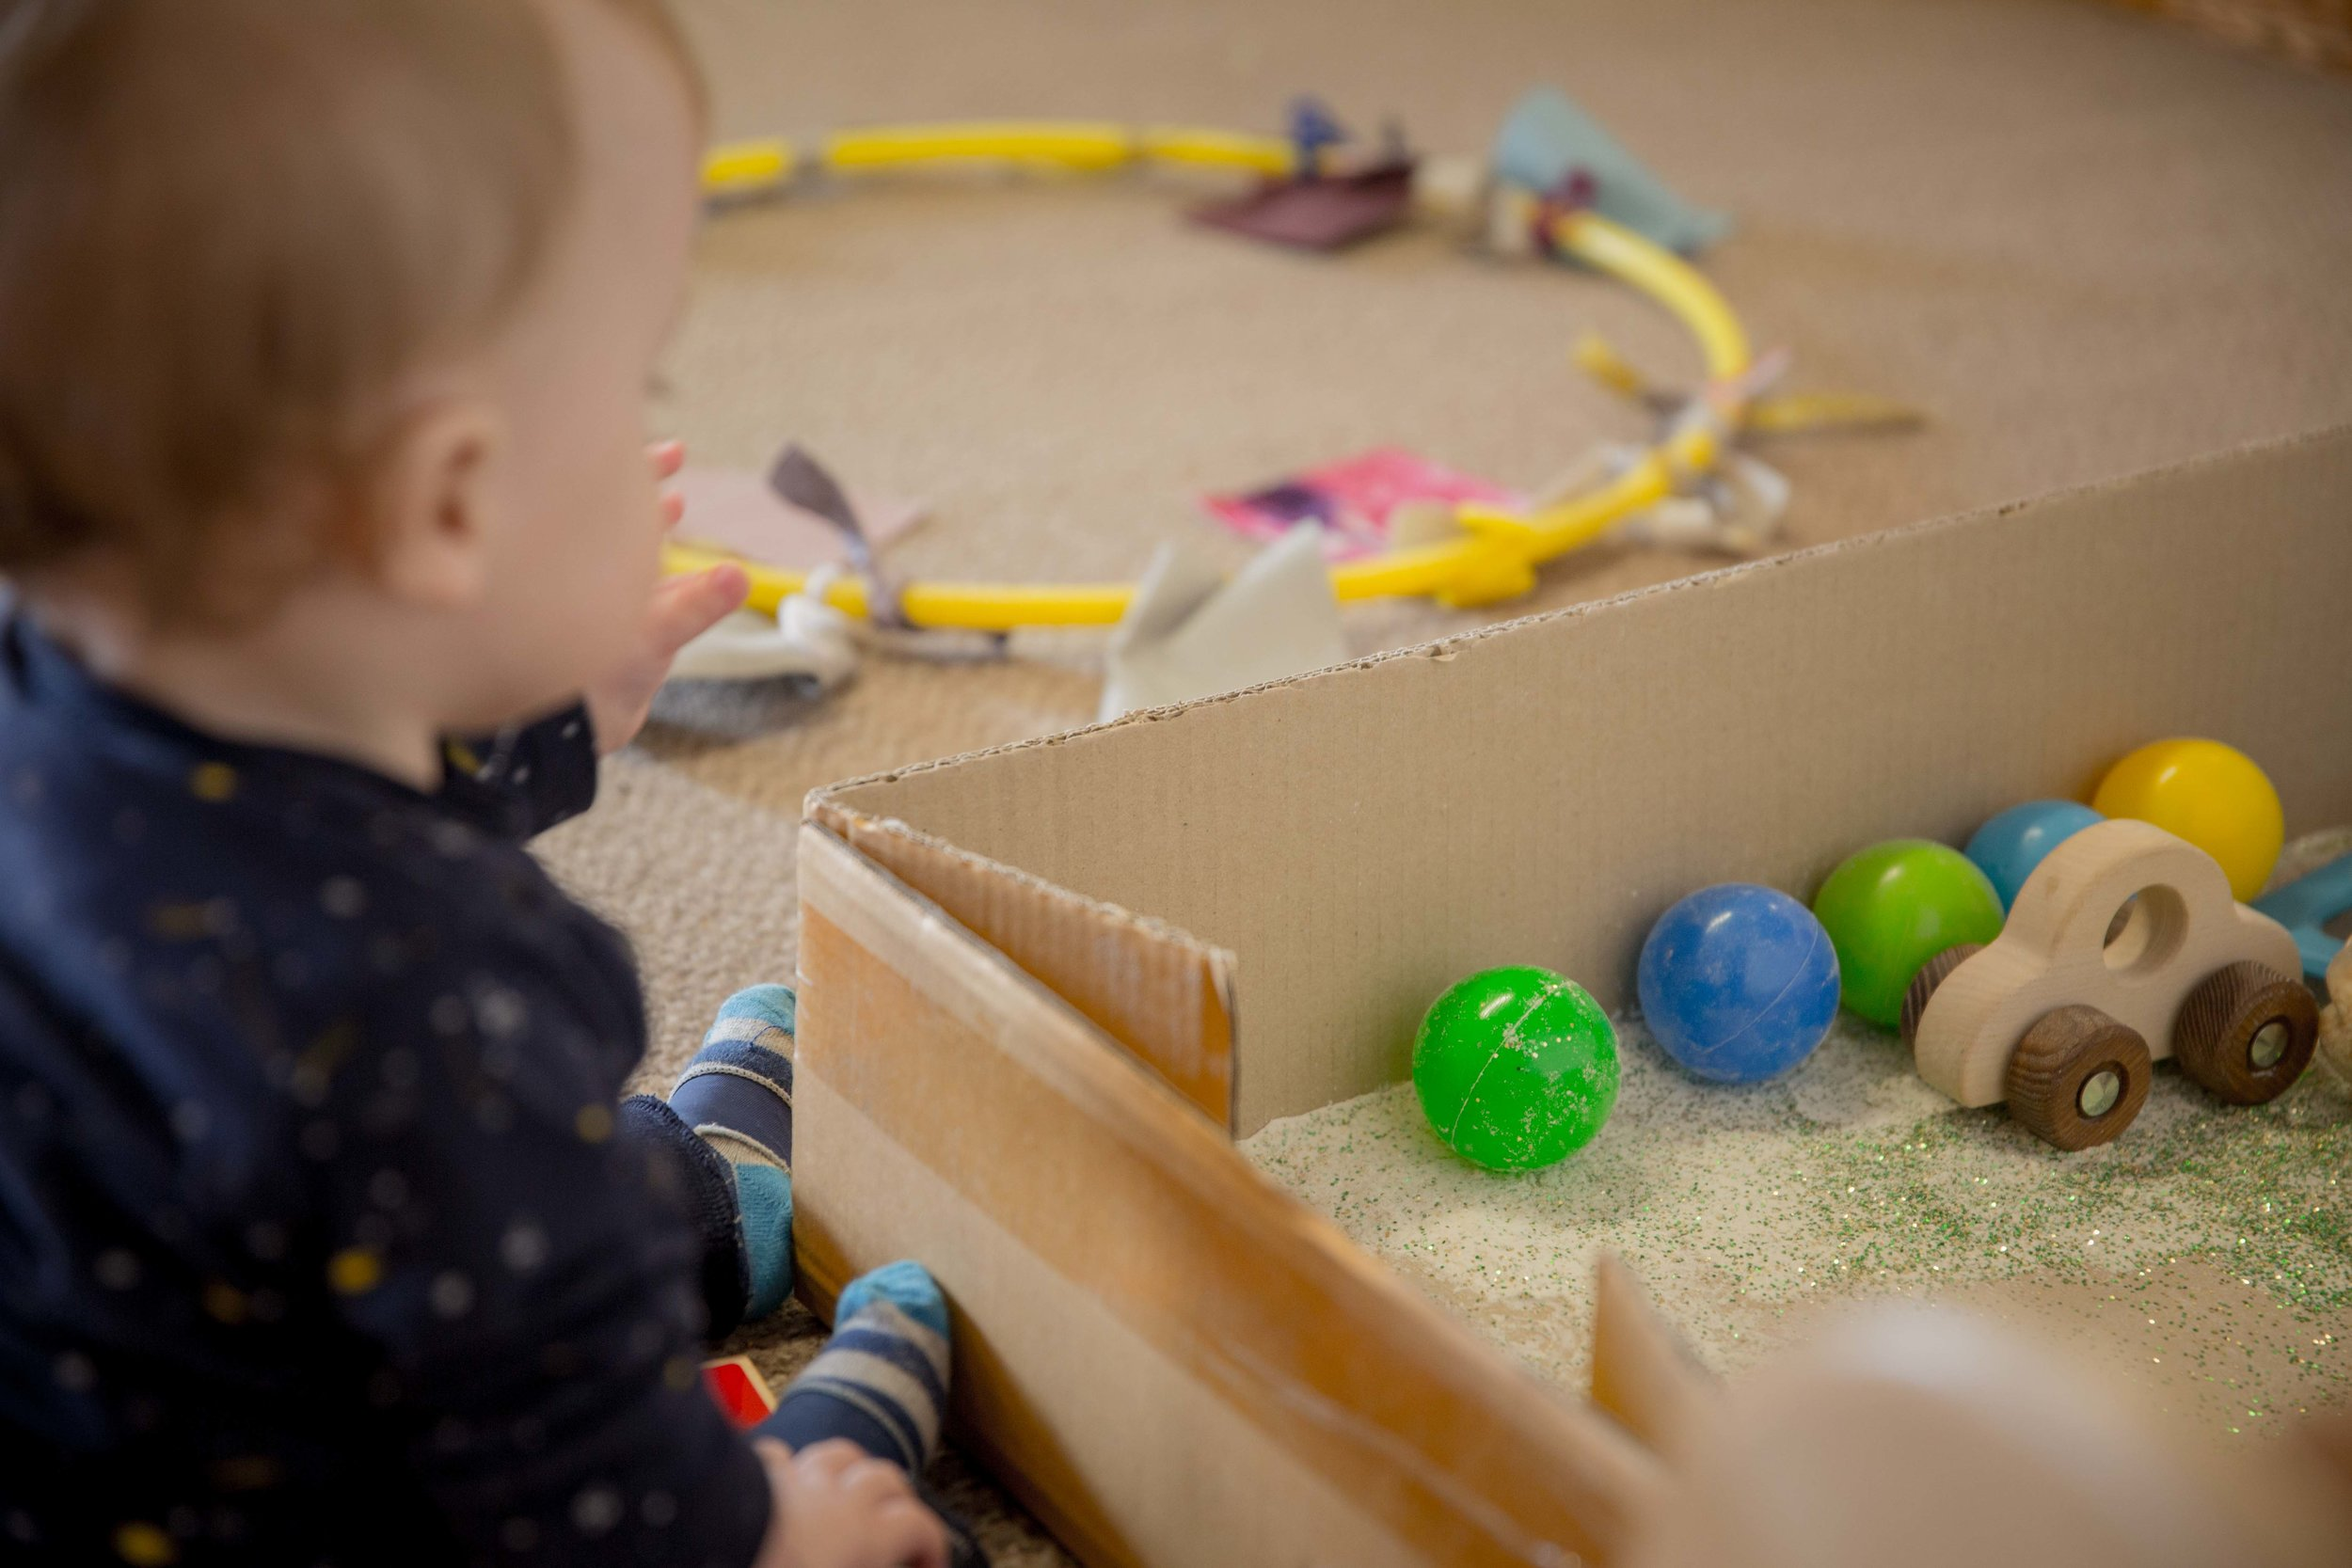 3-Commercial-nursery-school-photographer-chepstow-south-wales-natalia-smith-photography-14.jpg